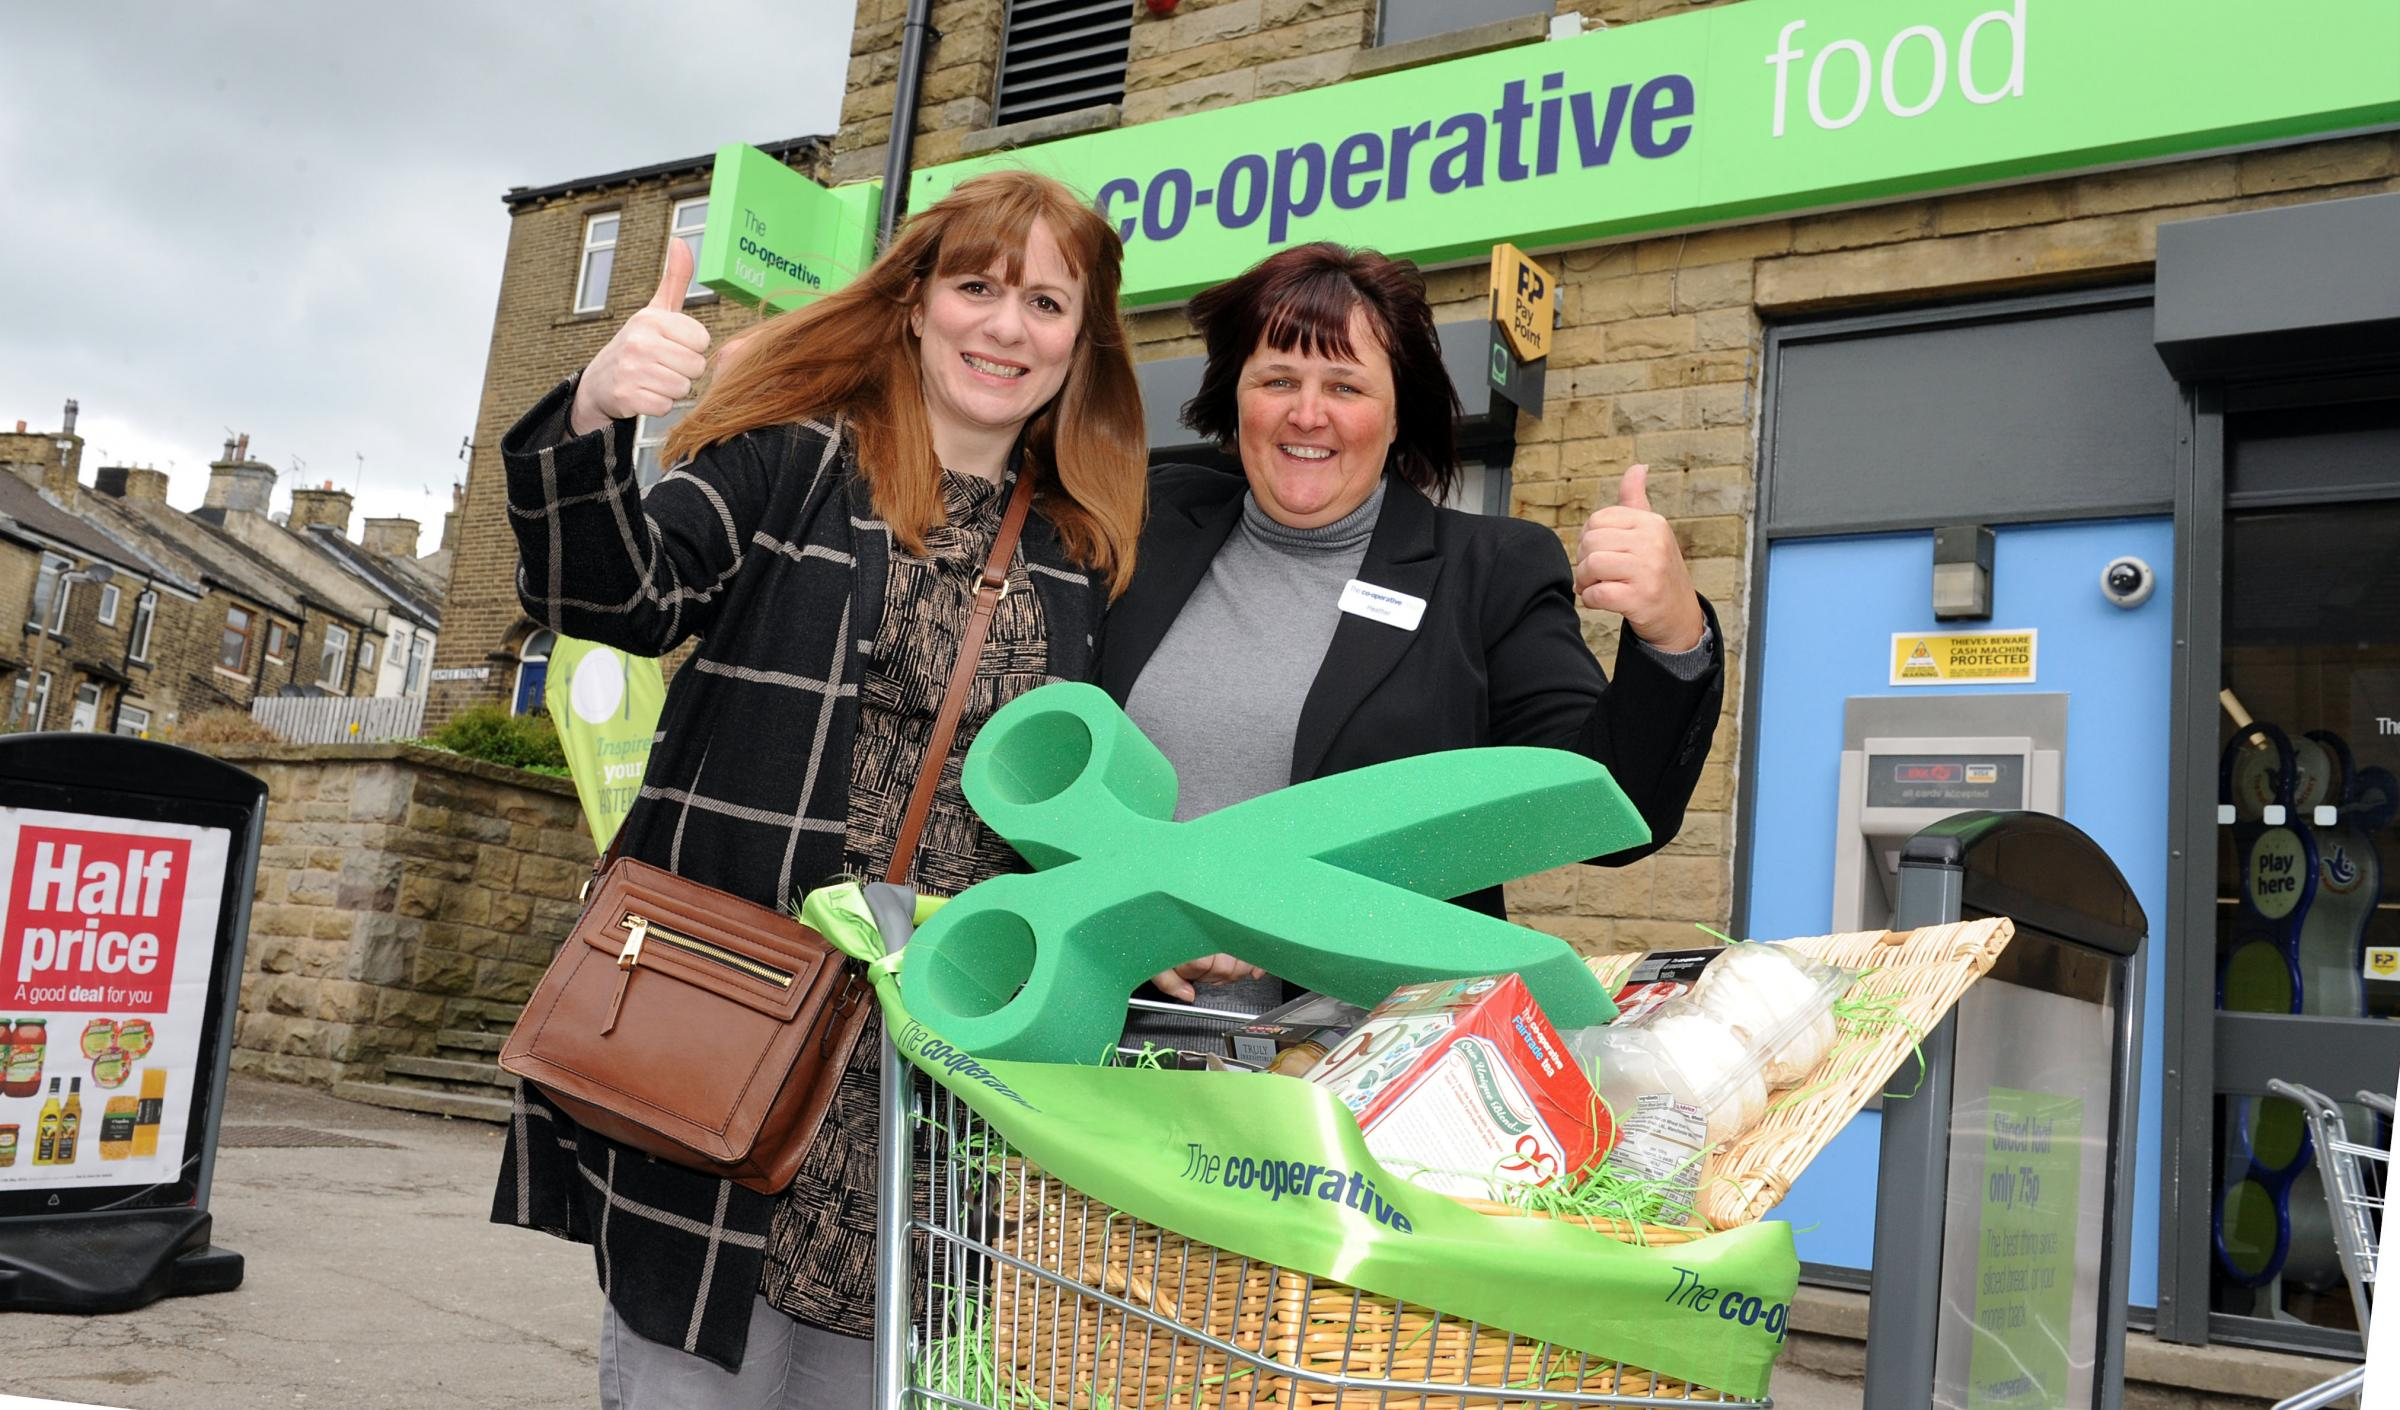 Sarah Dean, who opened the new Co-op store, with manager Heather Briggs